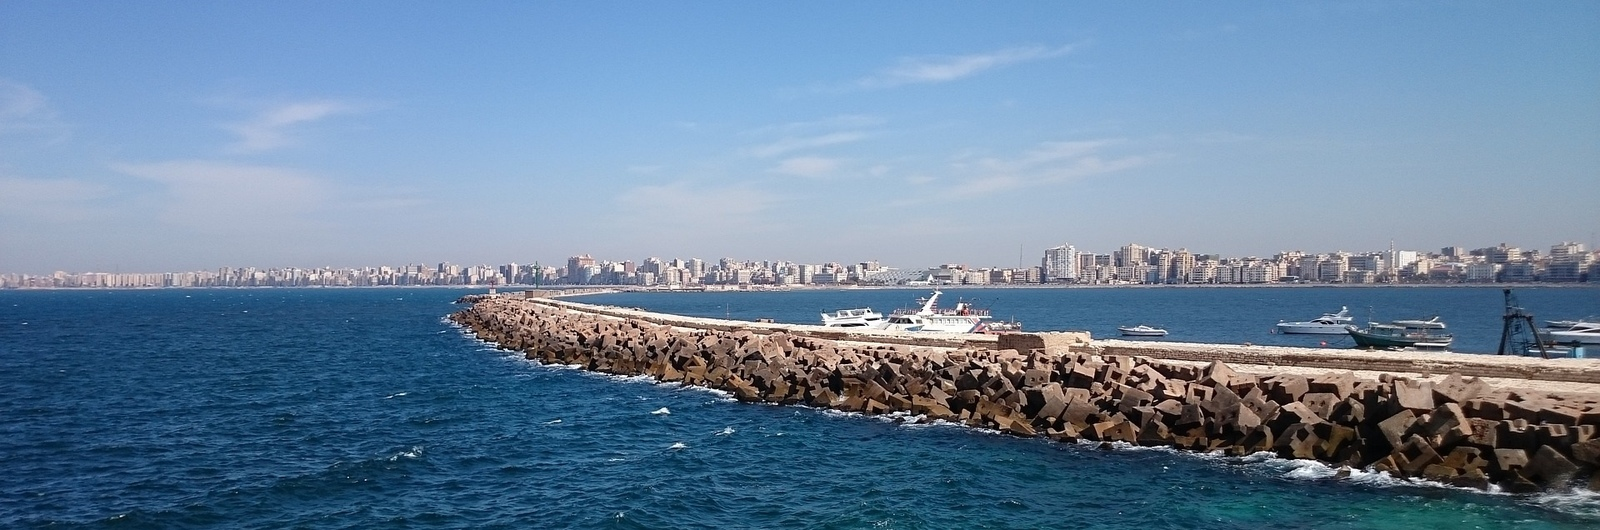 alexandria city header